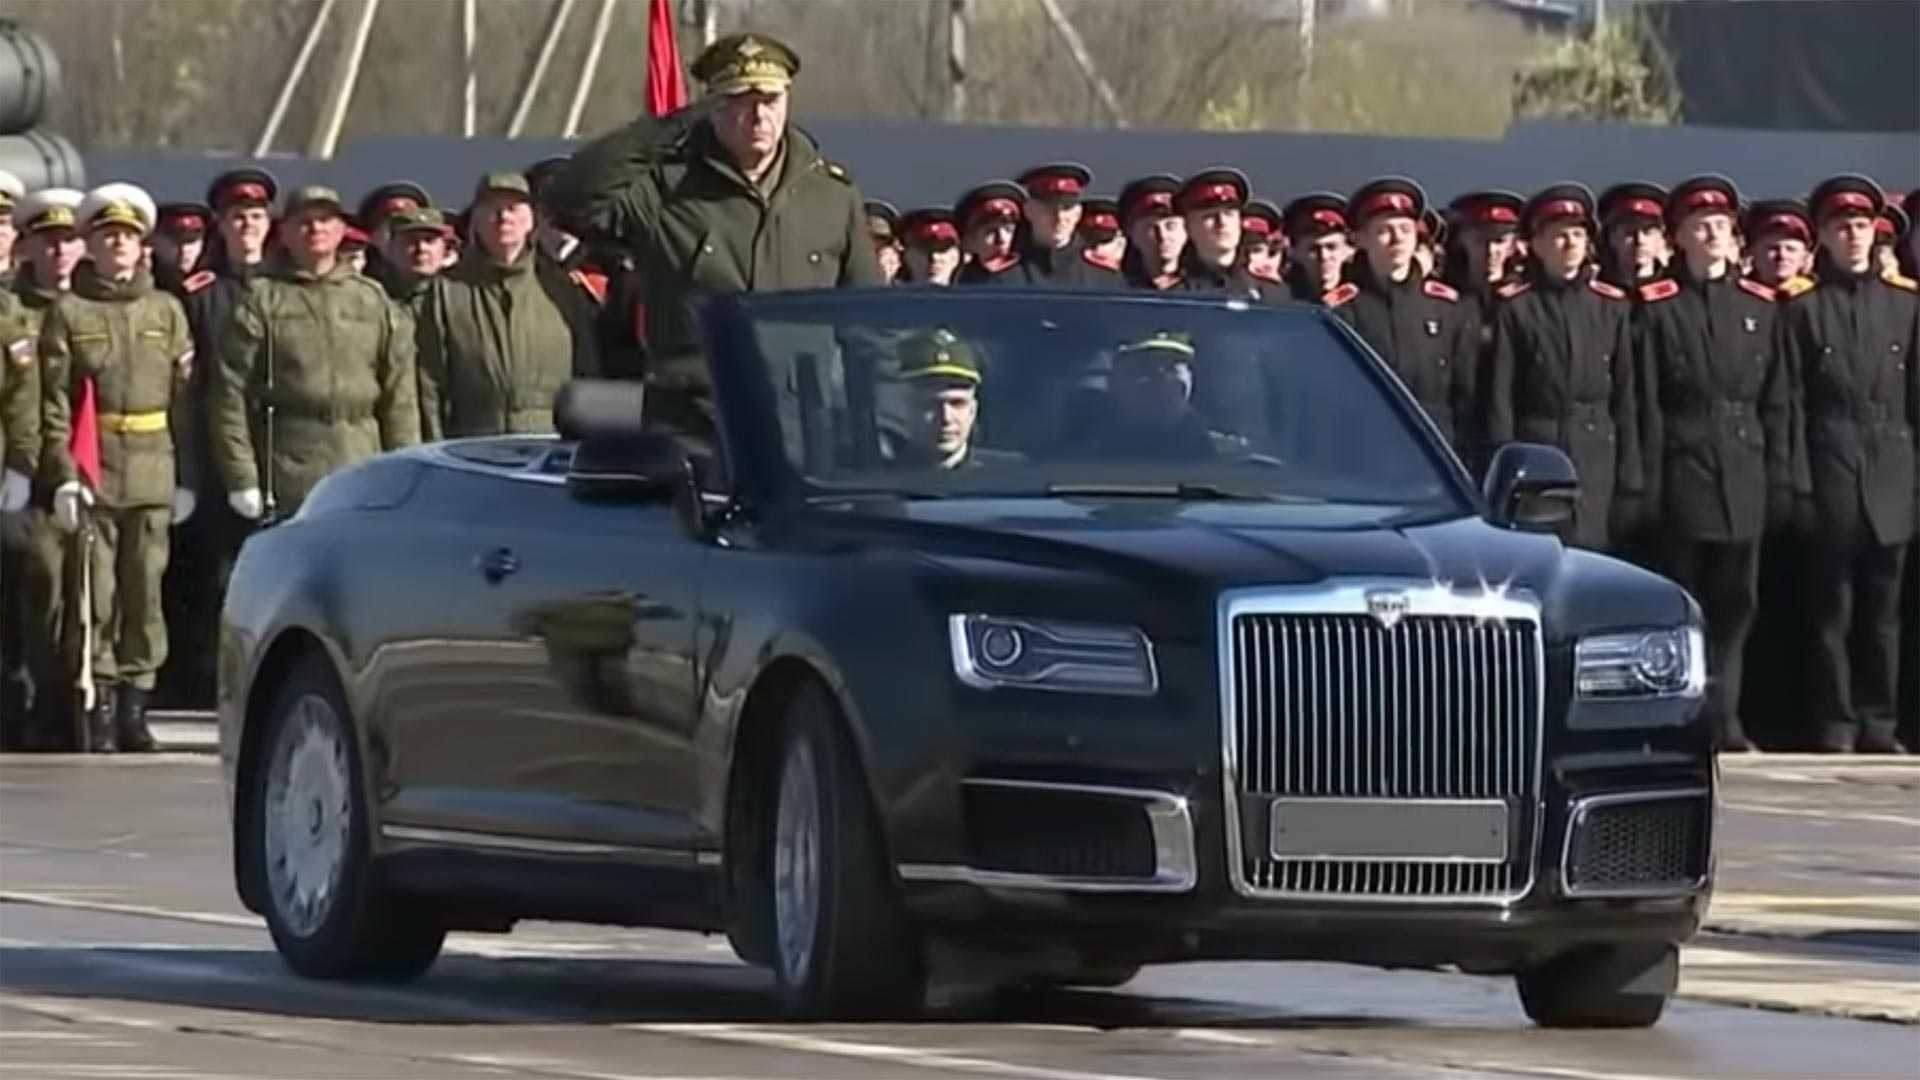 Russia's Stately Aurus Convertible Loses Camo For Military Parade